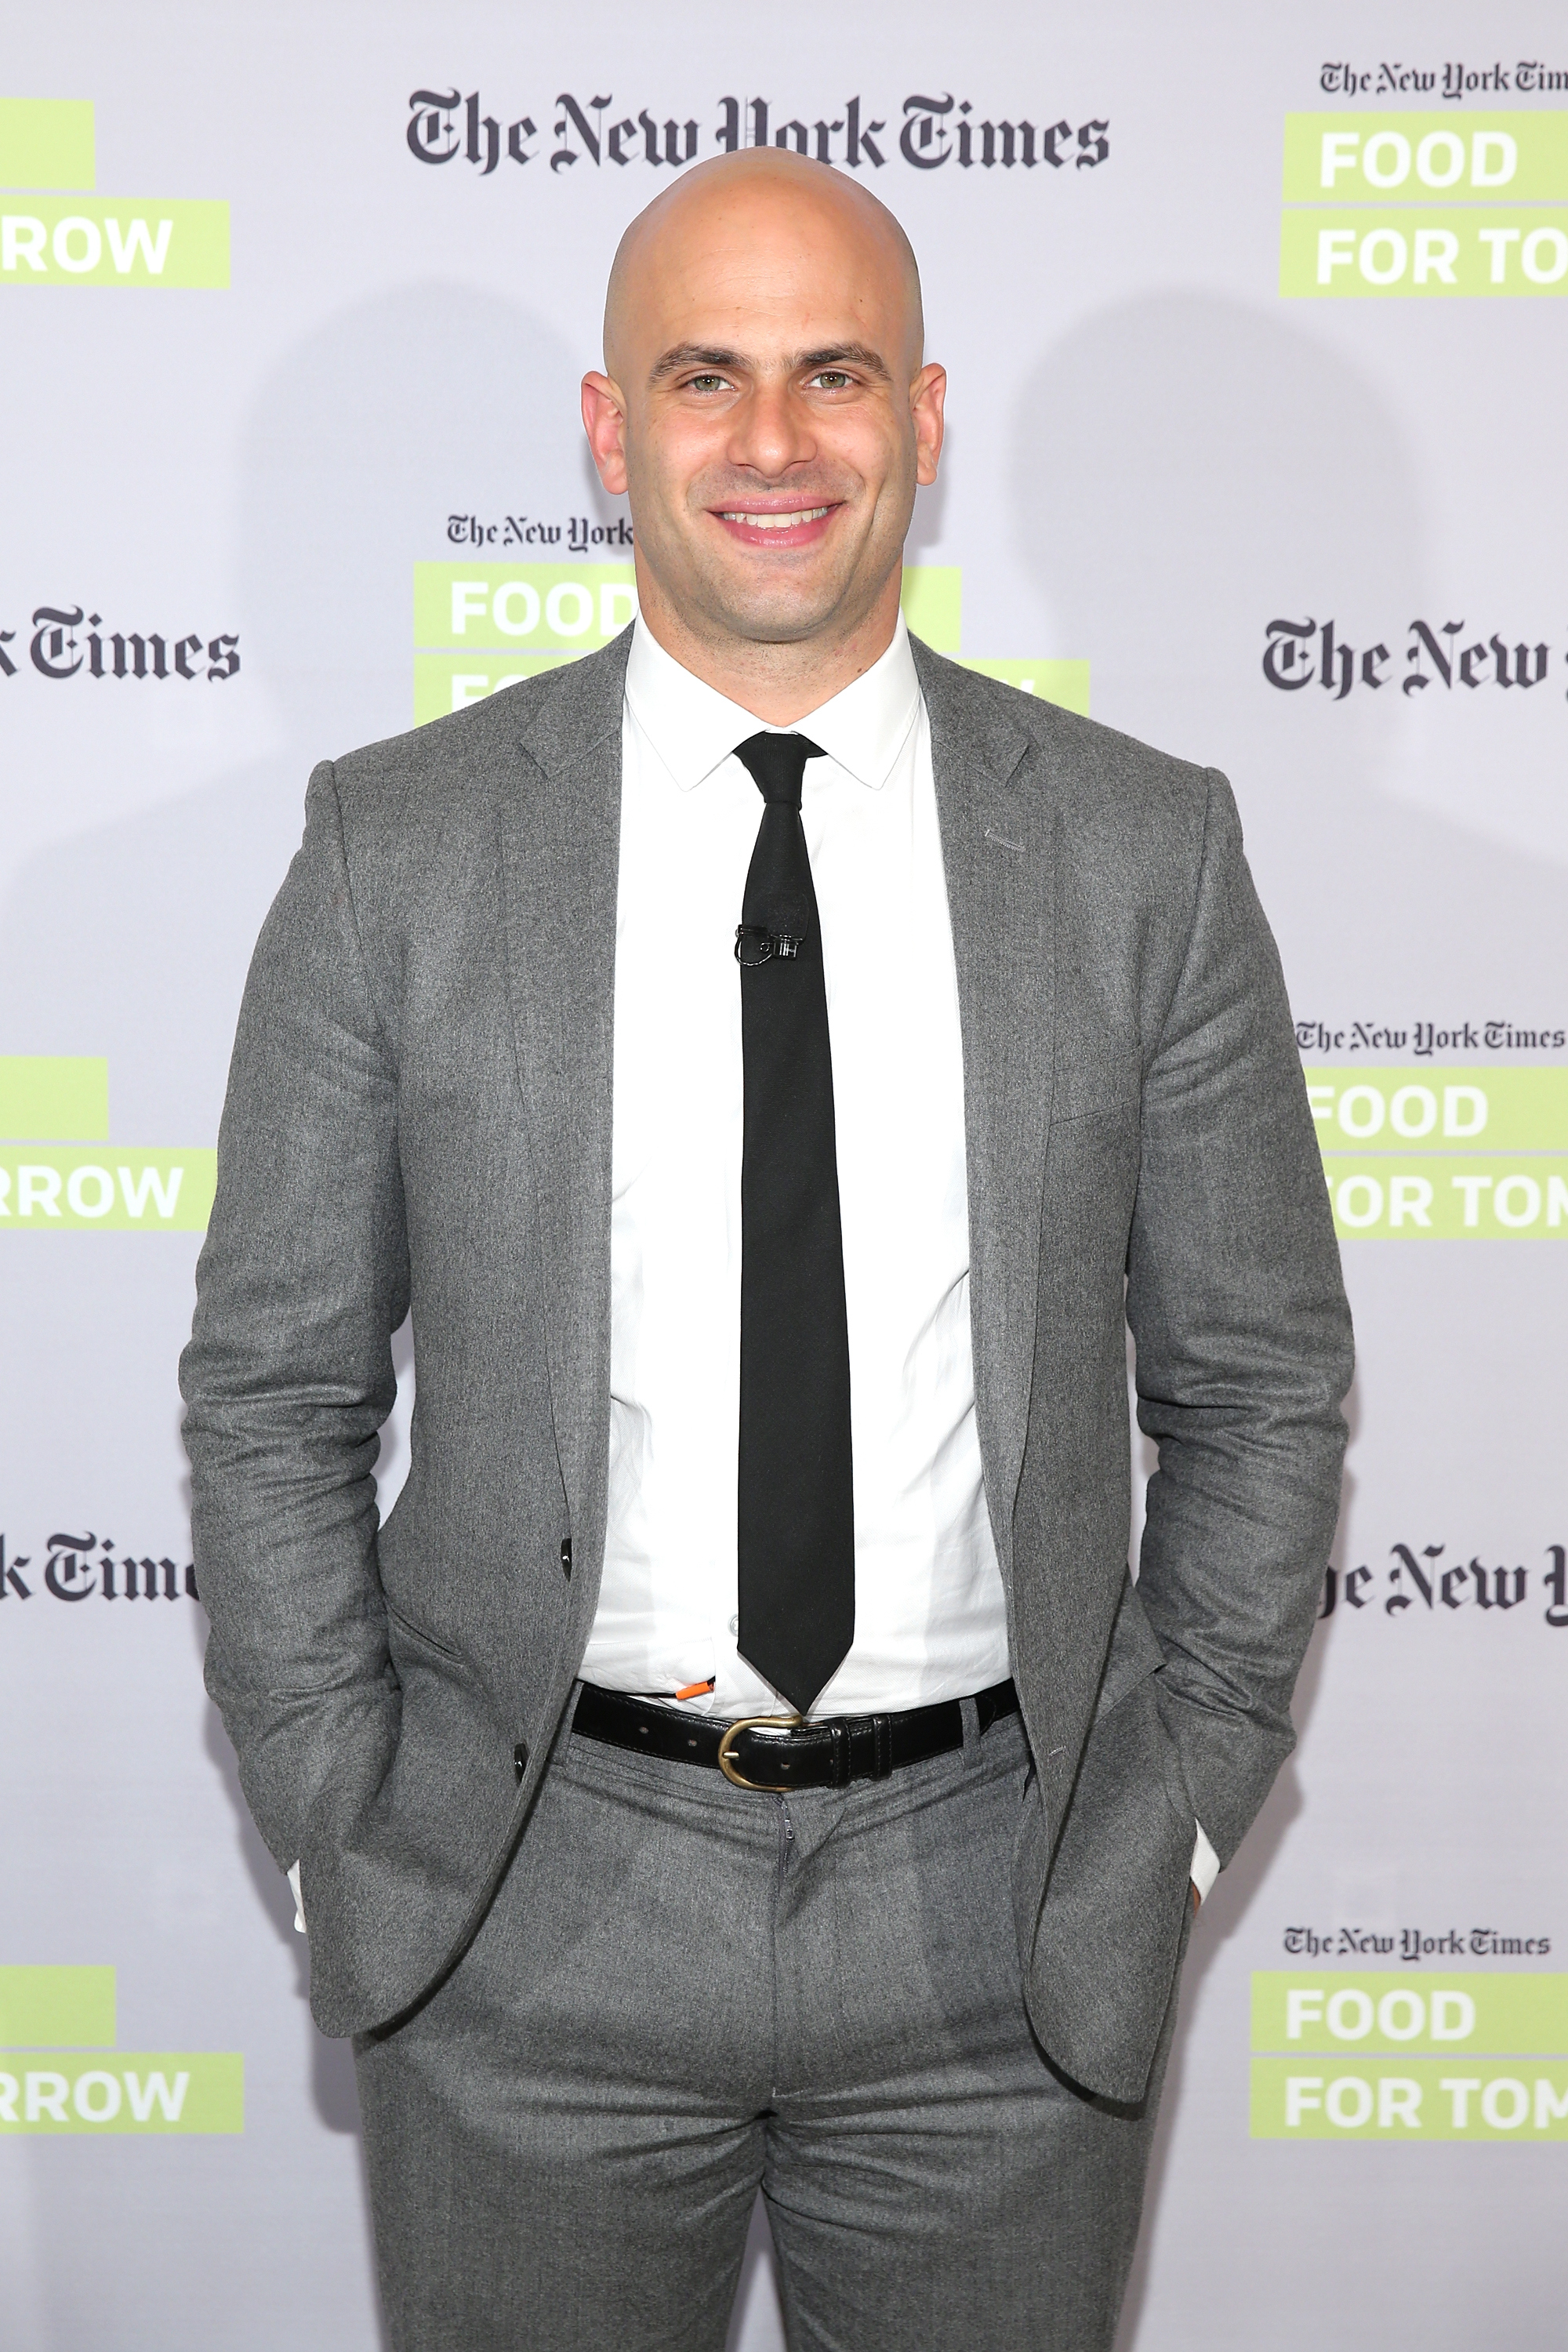 Former White House chef Sam Kass at The New York Times Food For Tomorrow Conference At Stone Barns, New York, on Nov. 12, 2014.